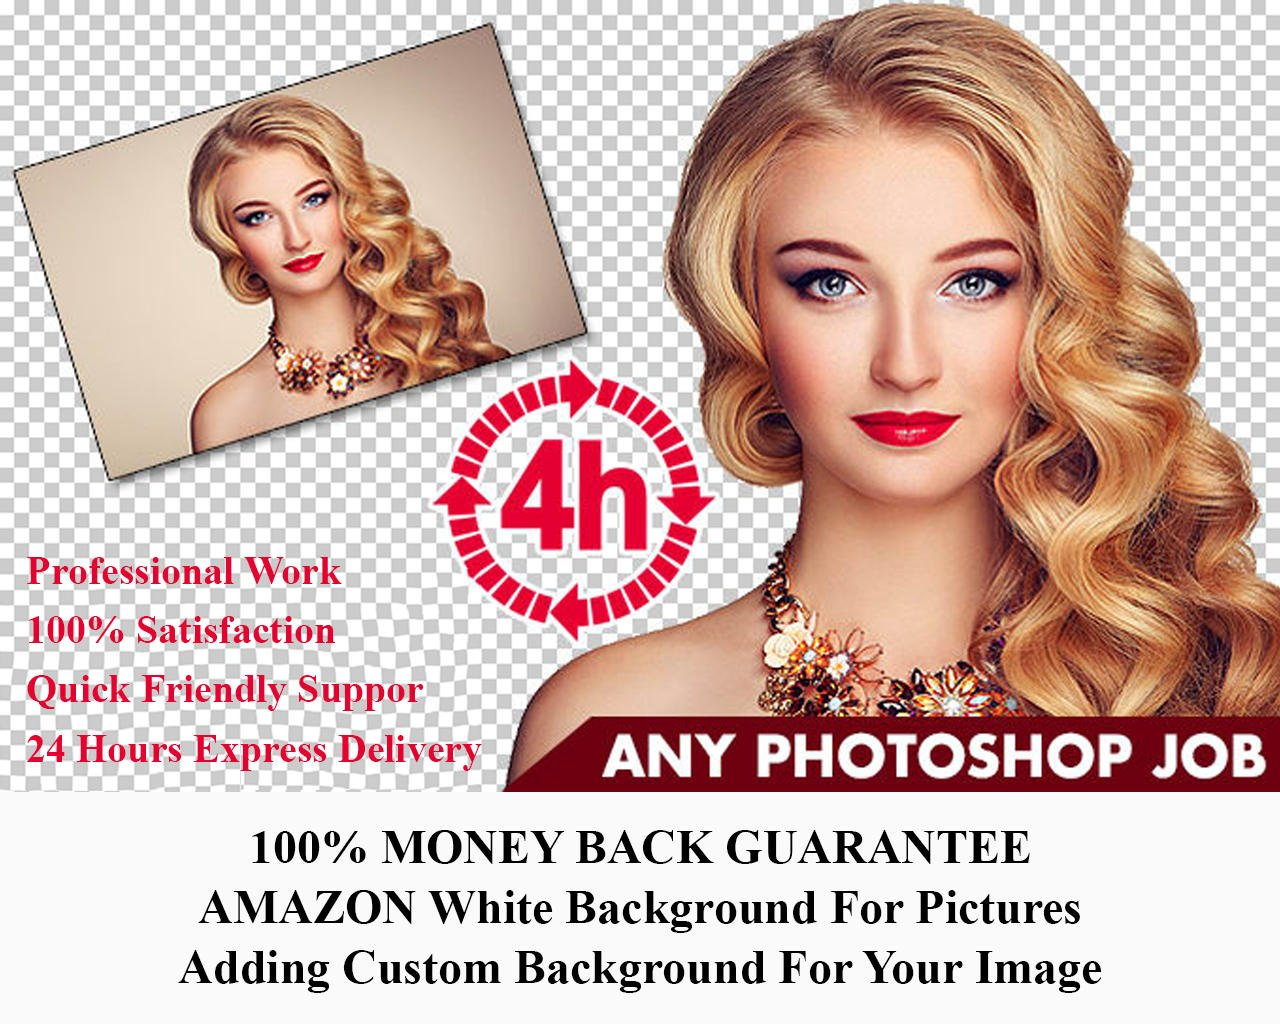 I will do 5 images background removal professionally